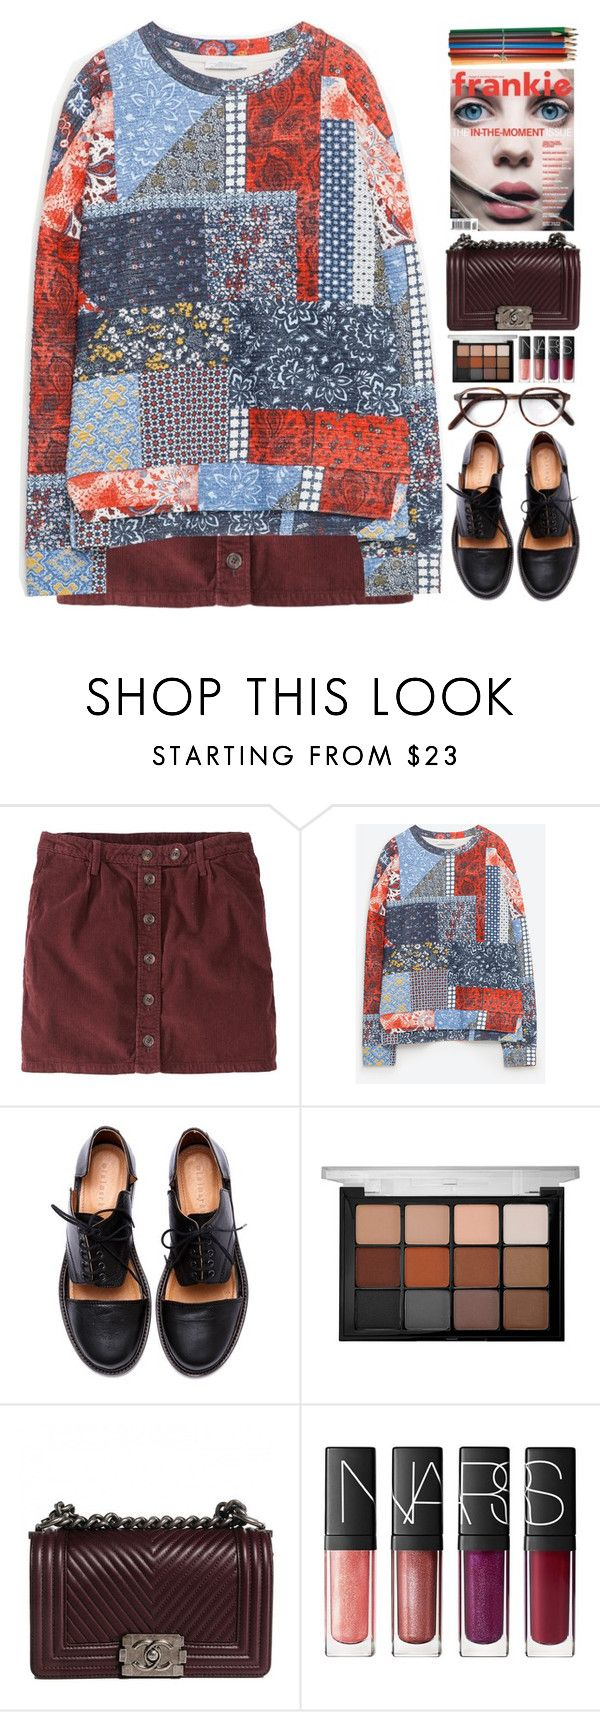 """Stitches"" by doga1 ❤ liked on Polyvore featuring Jack Wills, Zara, Minimarket, Viseart, Chanel, NARS Cosmetics, Cutler and Gross, women's clothing, women and female"